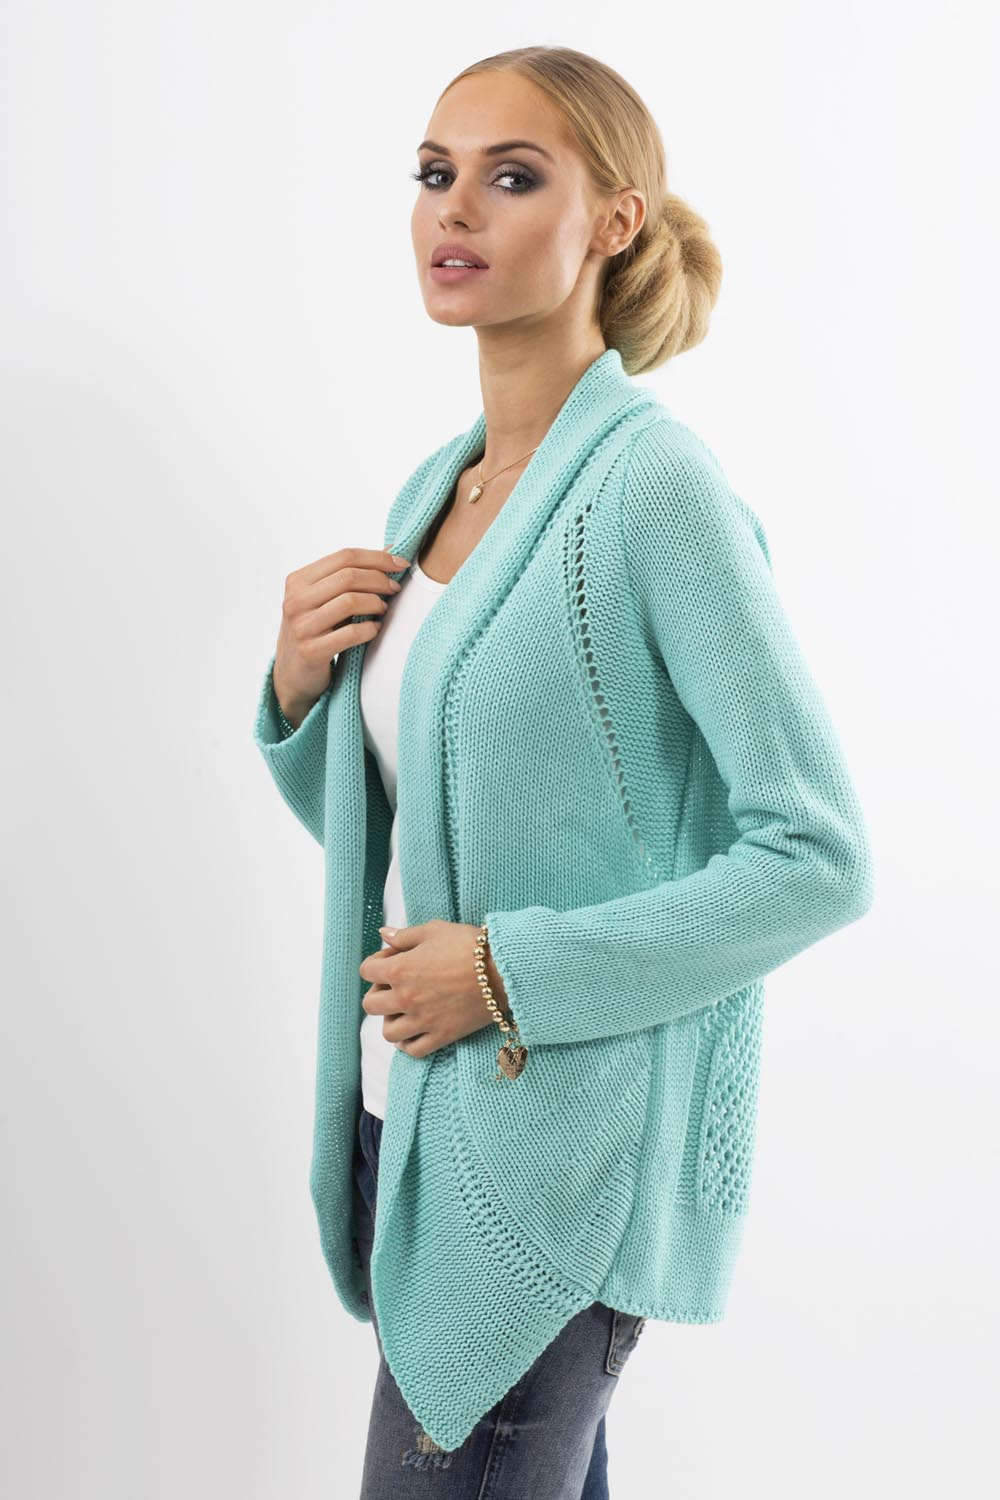 Knitting Pattern Cardigan Shawl Collar : Mint Shawl Collar Ladies Cardigan with Eyelet Knit Pattern